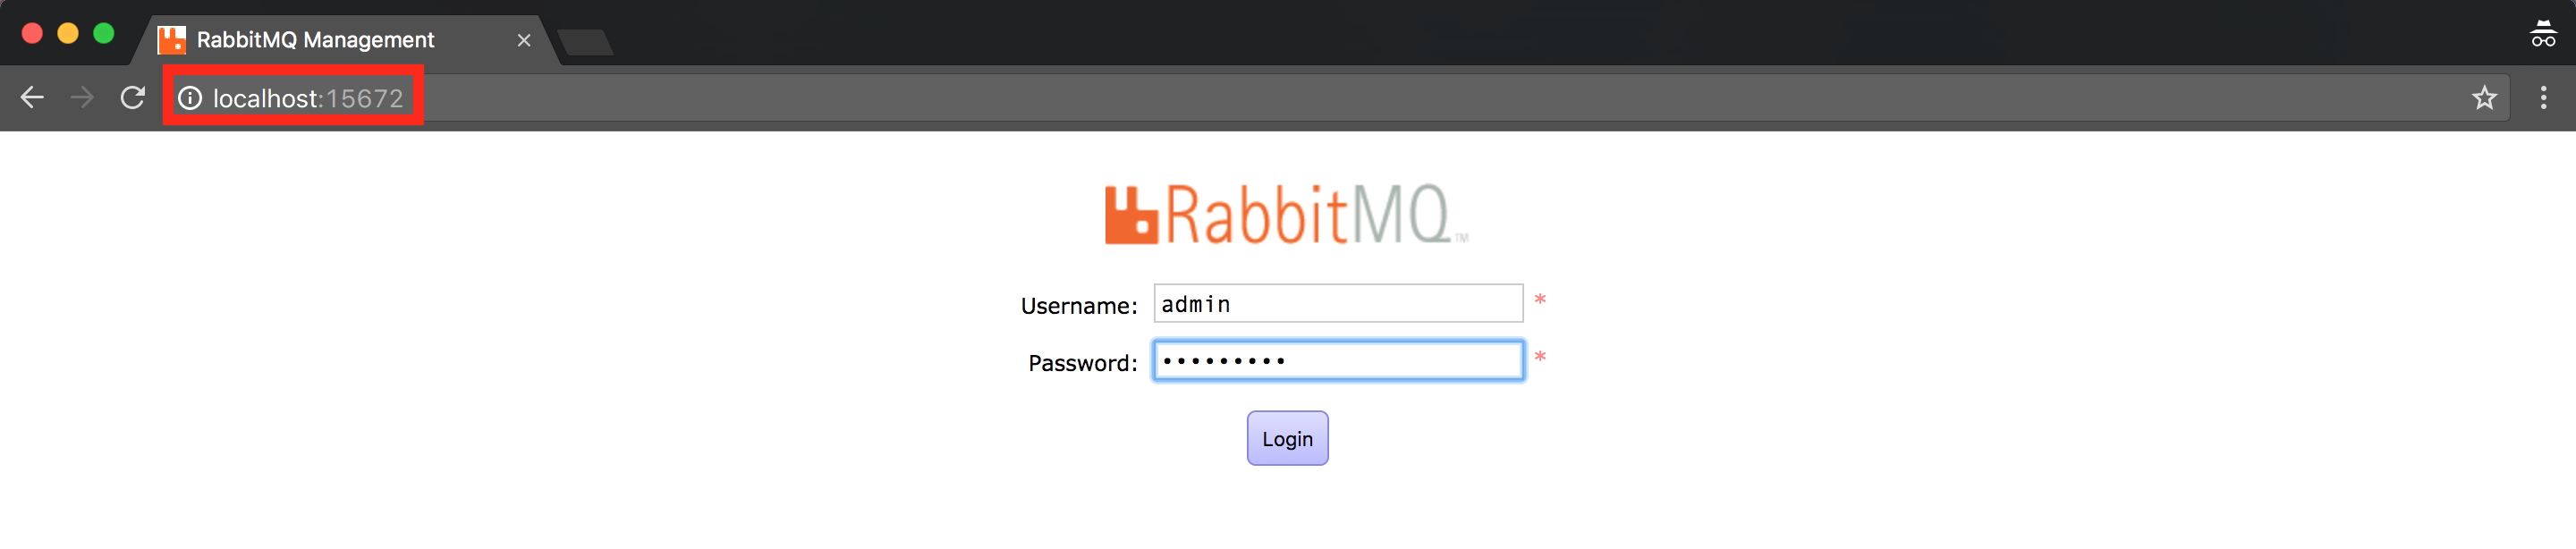 RabbitMQ cluster with Docker and Docker Compose | Through a glass